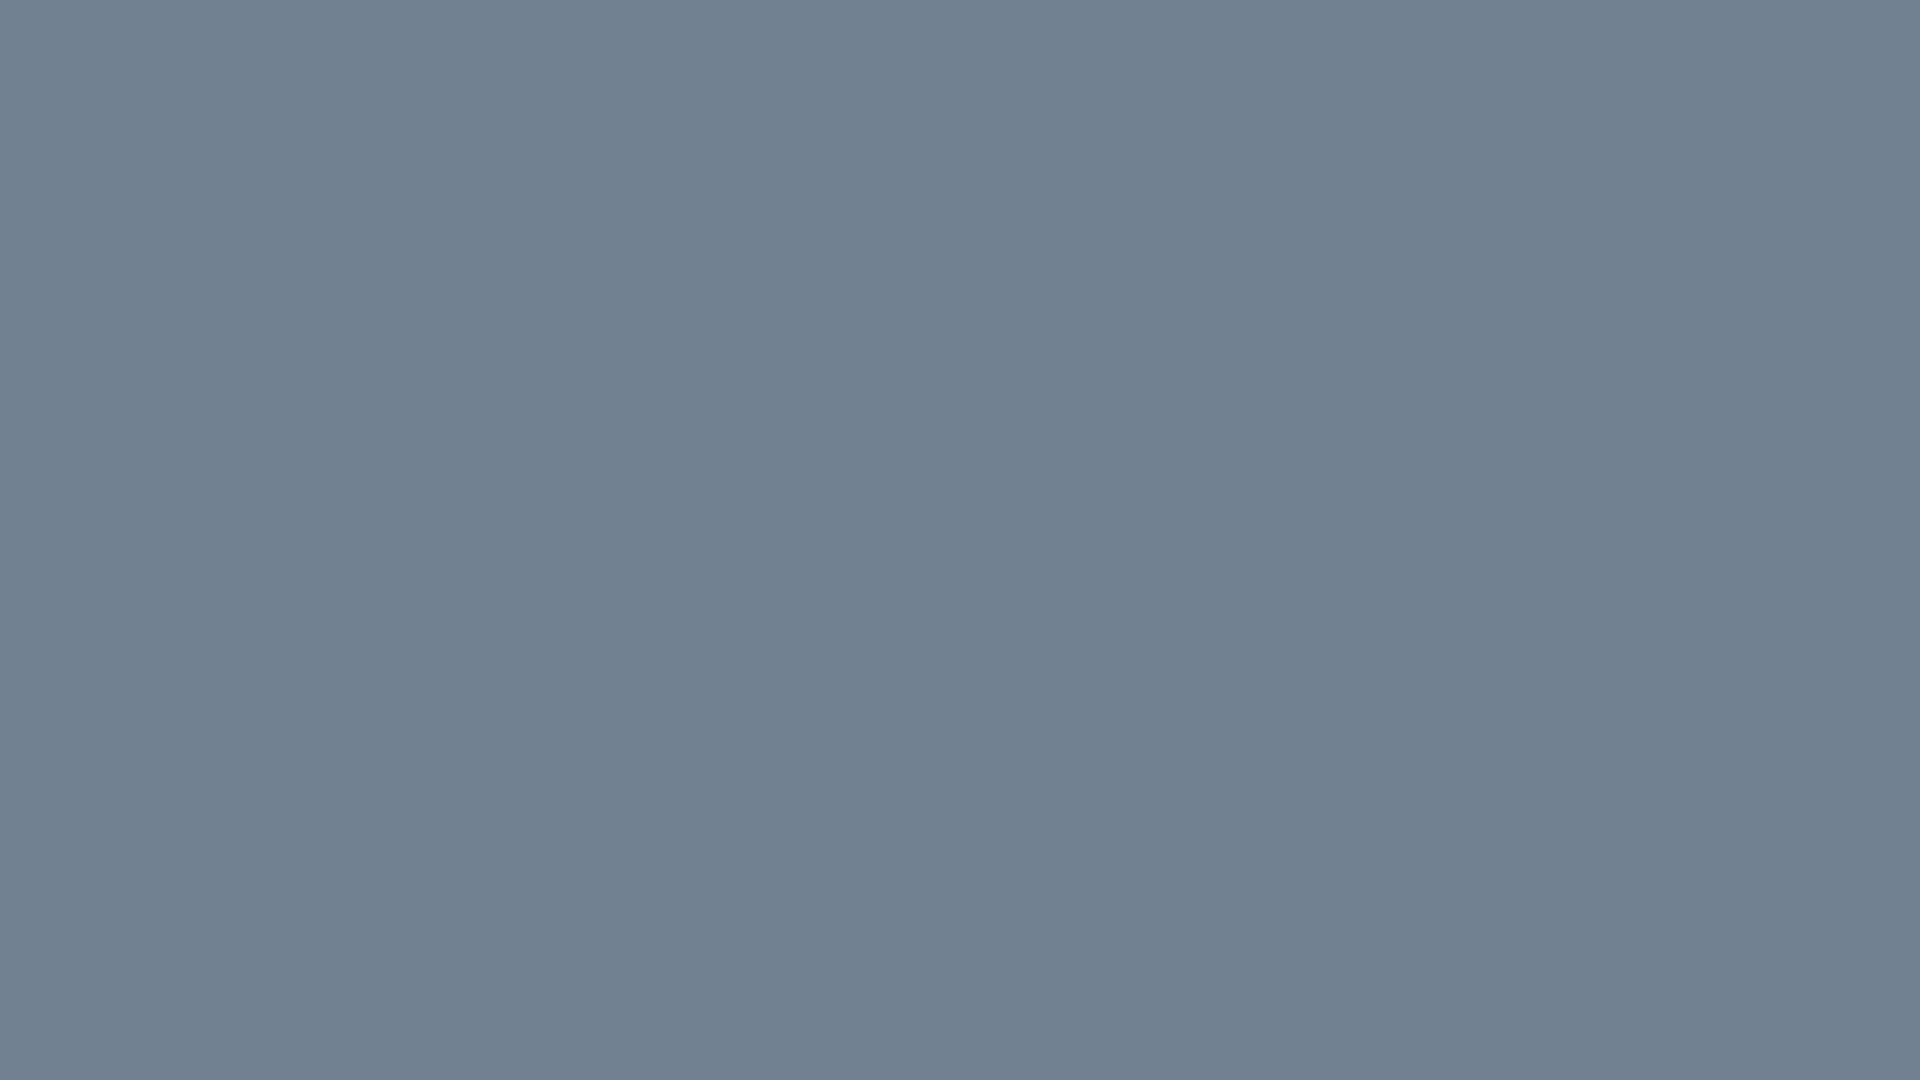 What Color Is Slate : Slate gray solid color background